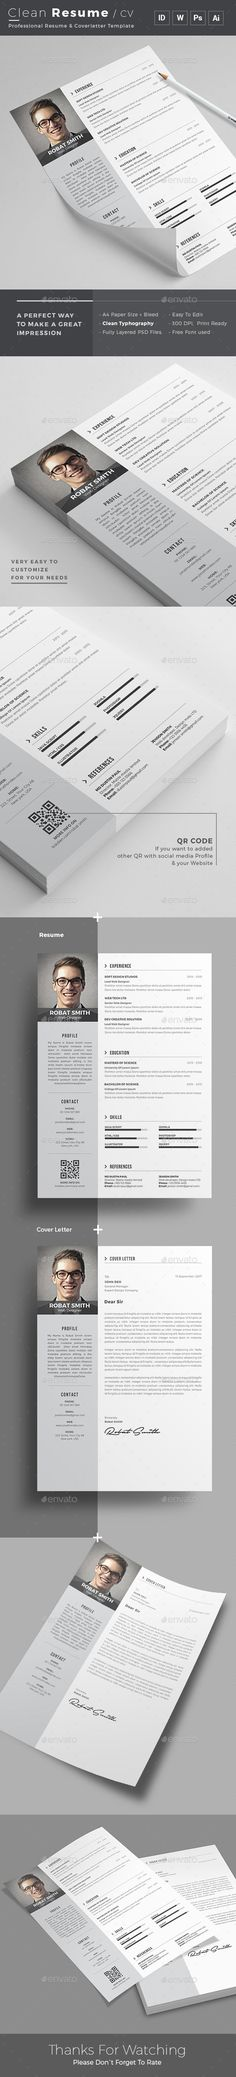 Resume Bundle  In   Ai Illustrator Template And Personal Branding